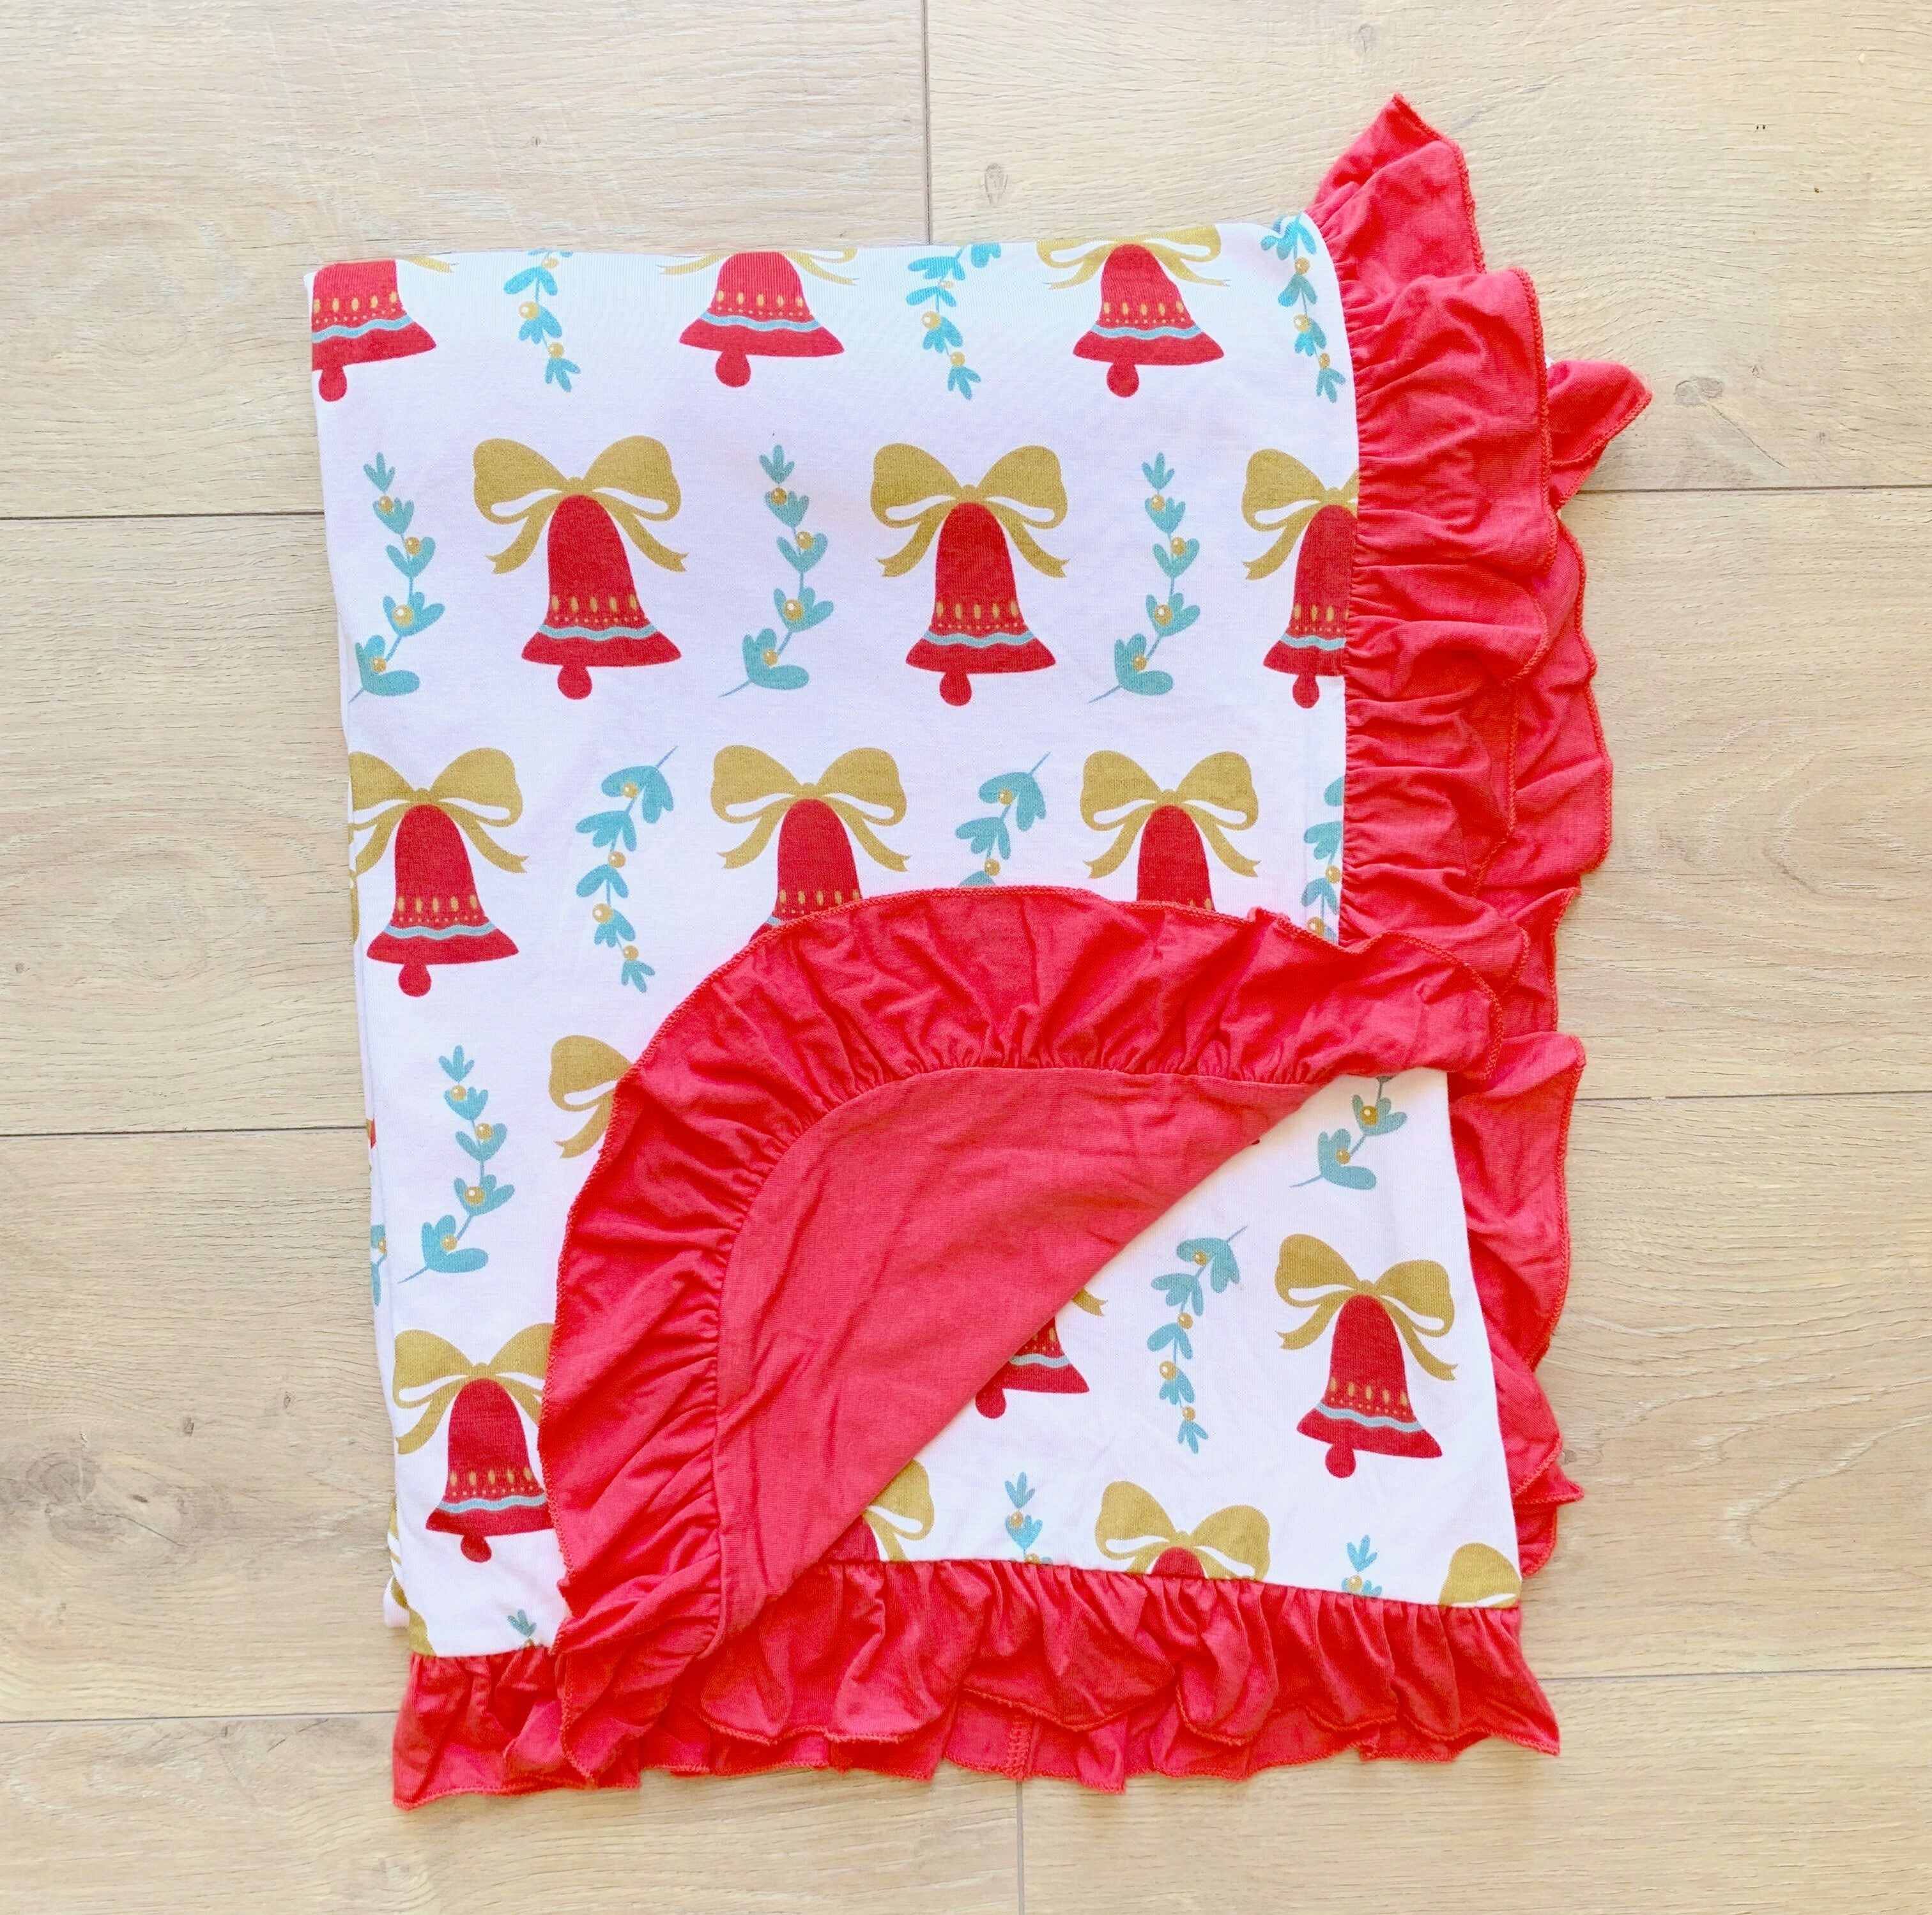 Kozi & Co - Holiday Collection - Stroller Blanket - Bells & Mistletoe with Ruffles